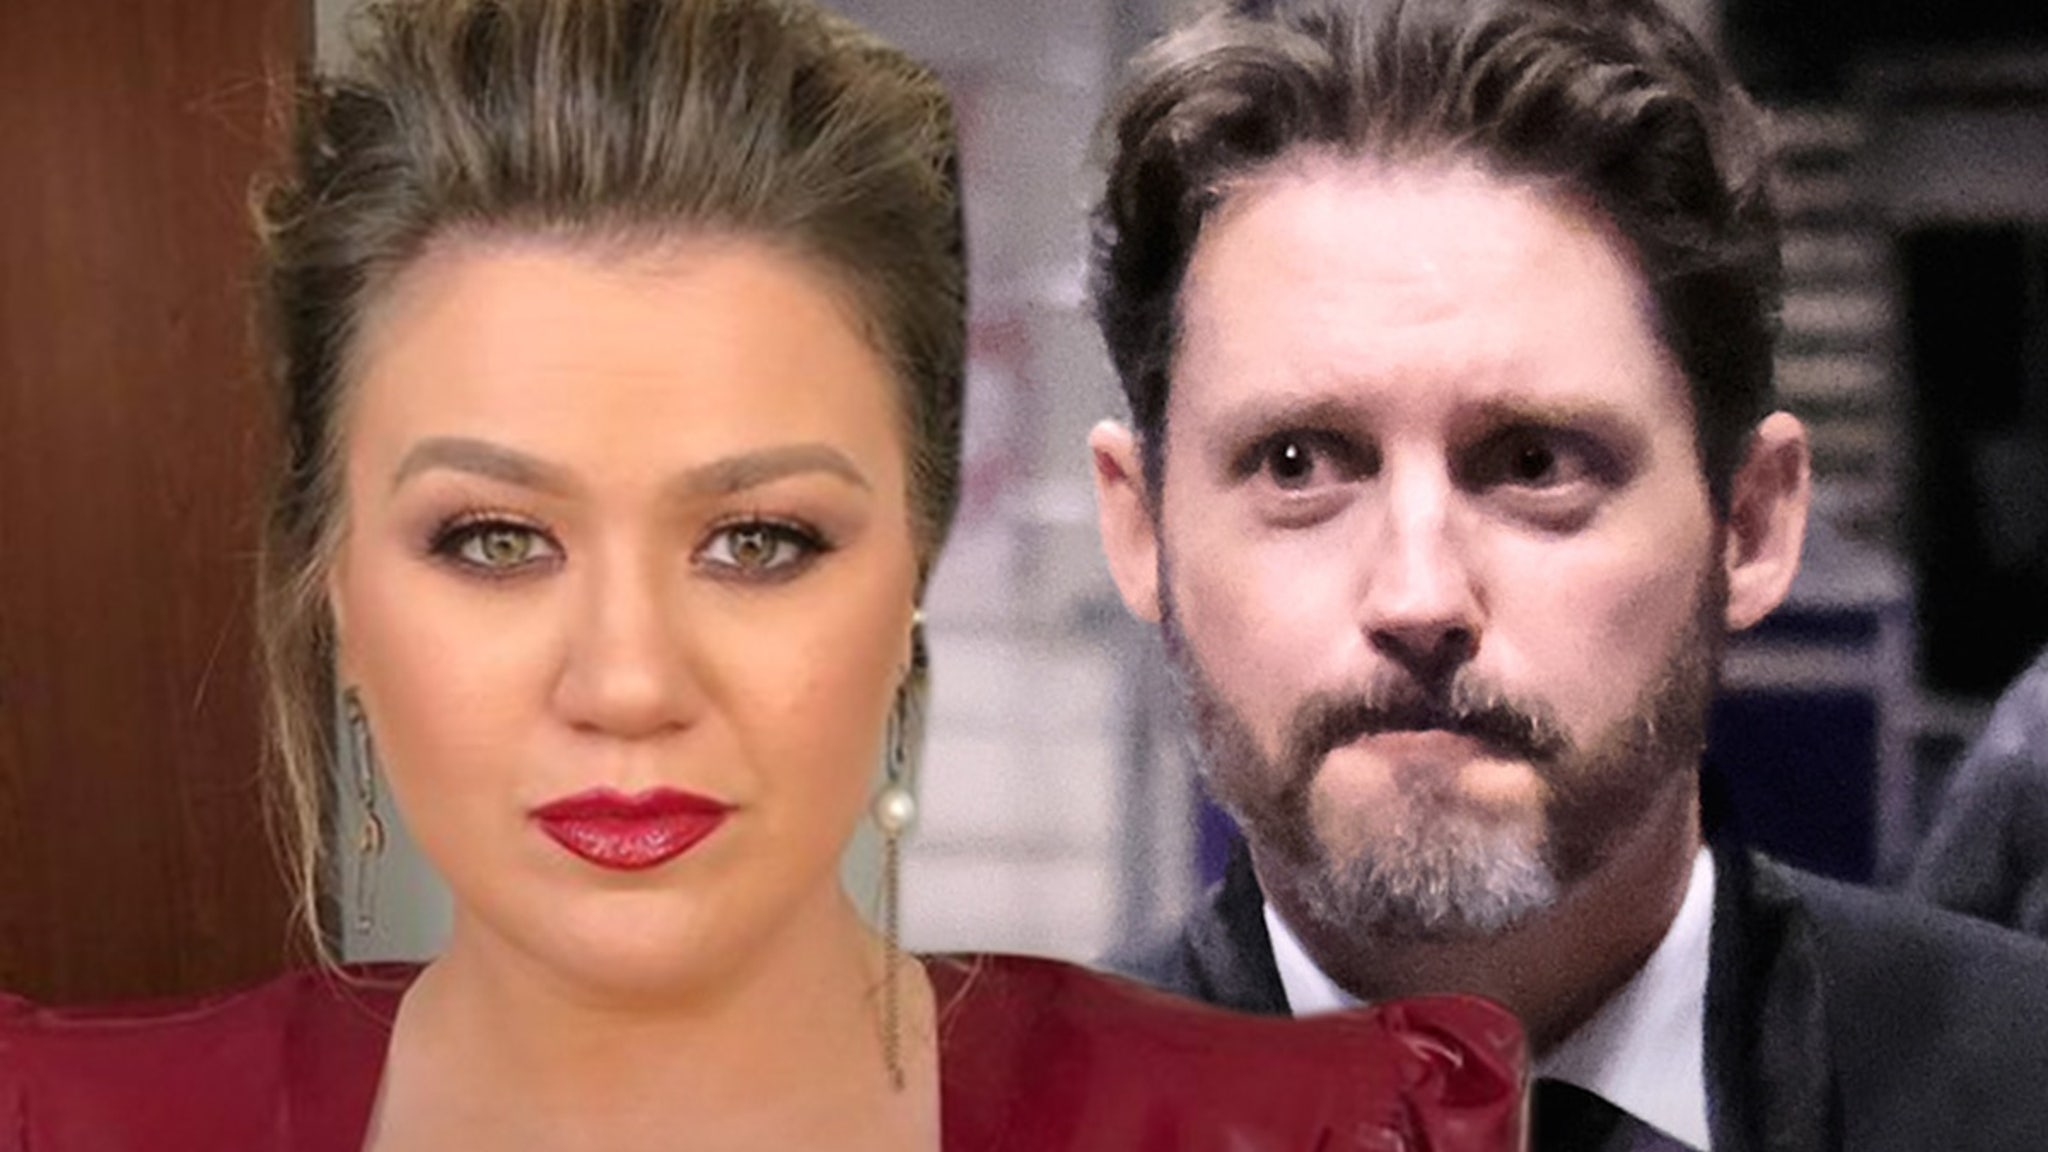 Kelly Clarkson Claims Estranged Husband Brandon Blackstock Defrauded Her Out of Millions – TMZ